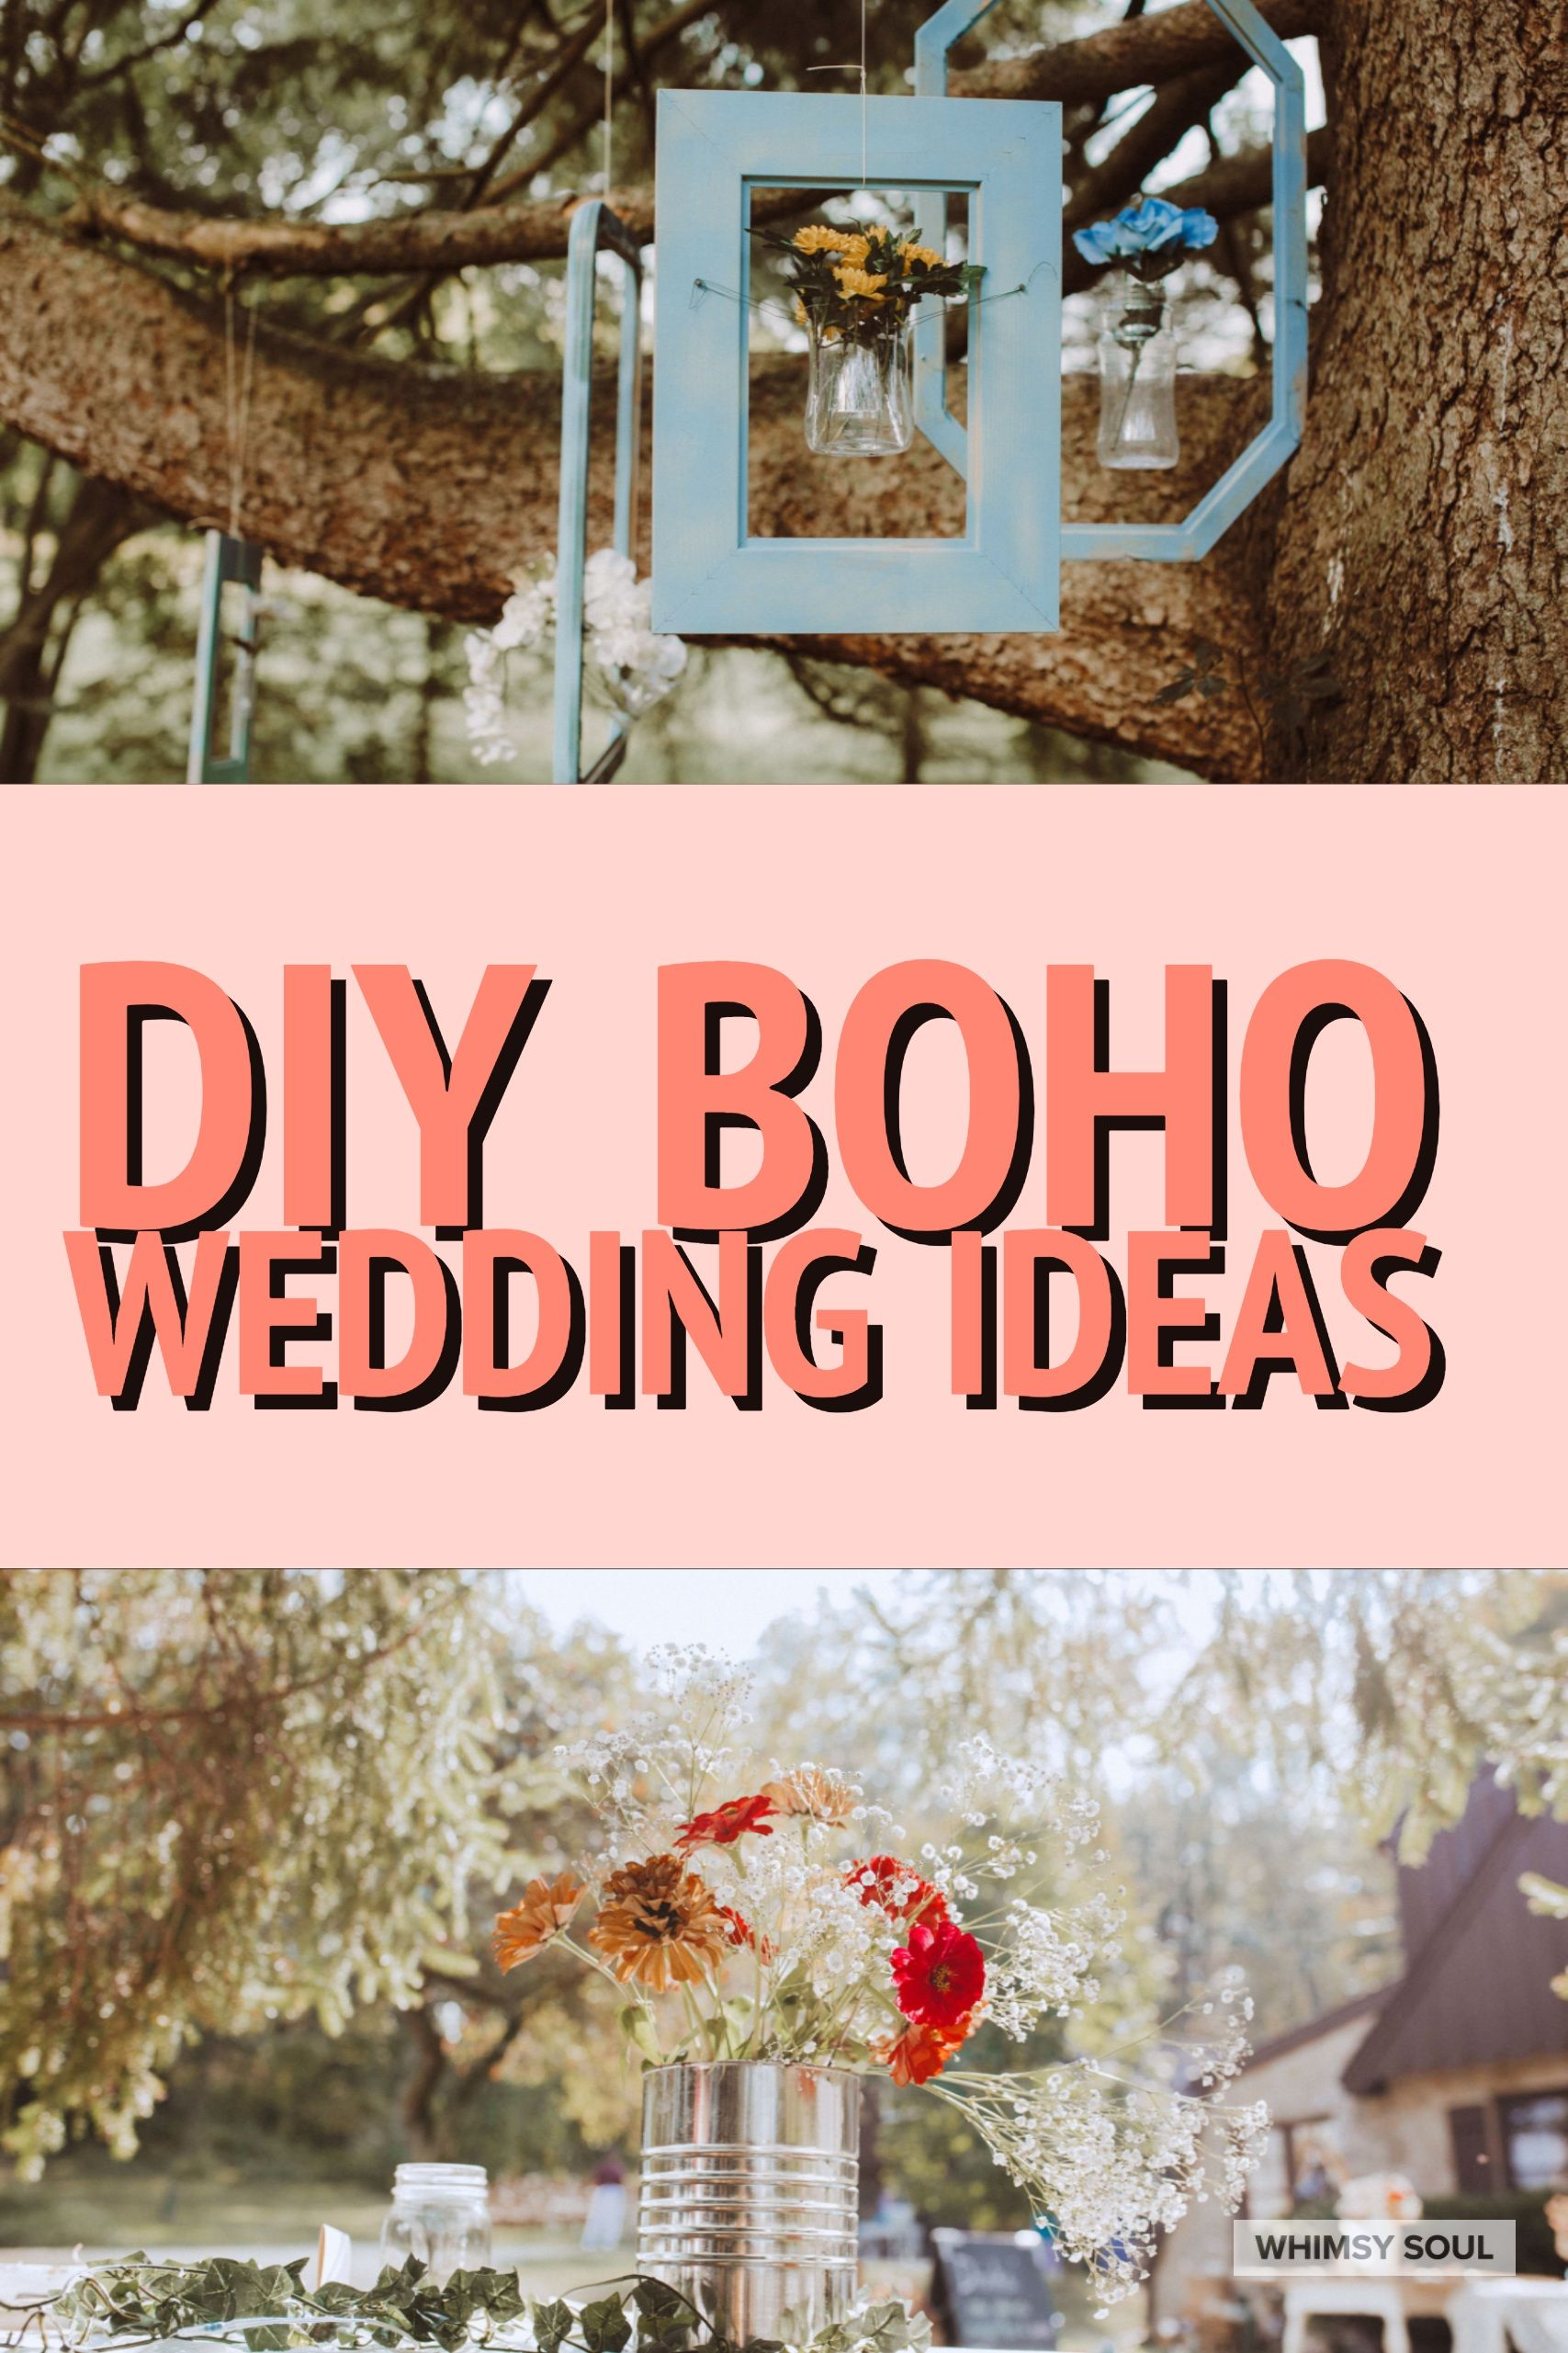 Magical Wedding In The Woods | Pinterest | Boho wedding decorations ...